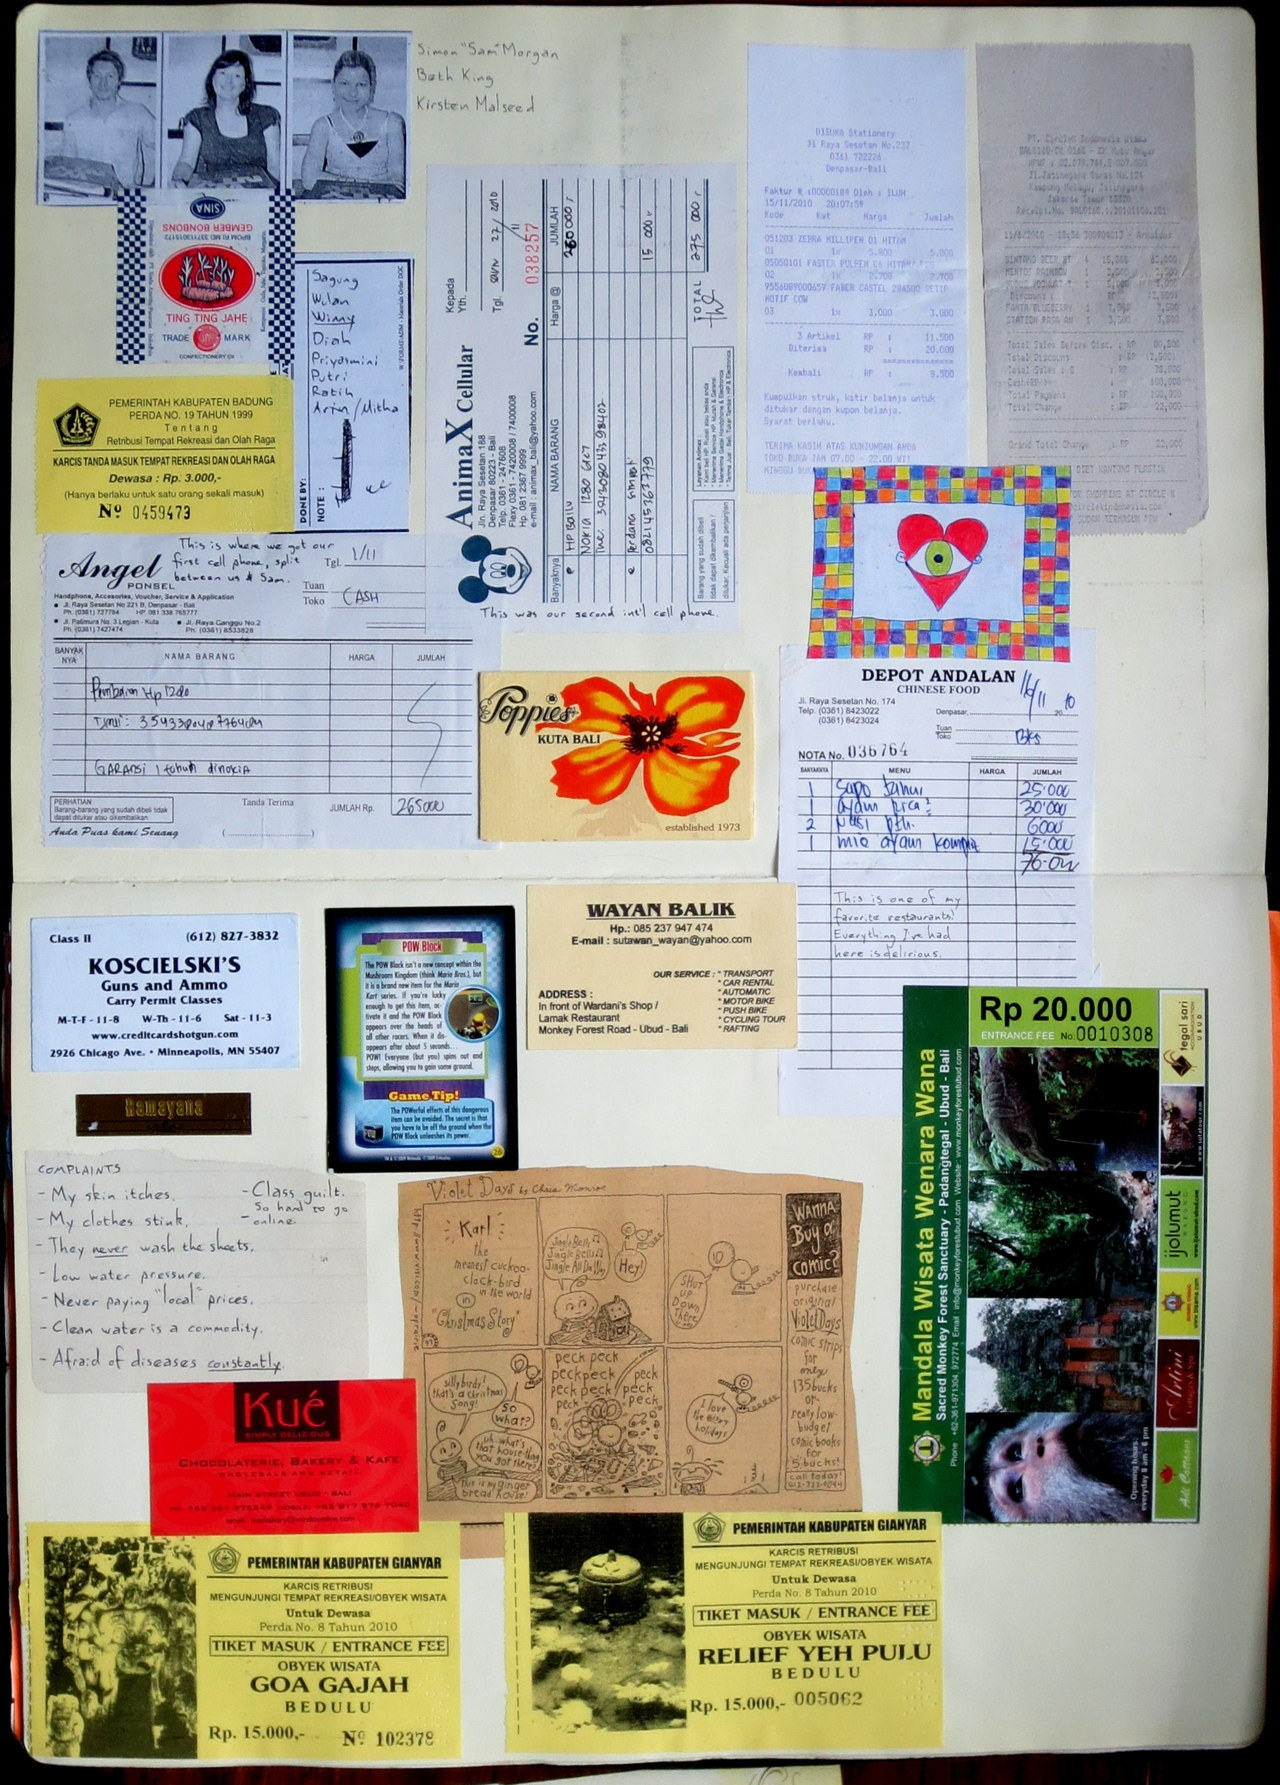 My scrapbook from SE Asia. Everywhere we went, I saved brochures, business cards, flyers, receipts, all sorts of printed things and tried to group them in more or less chronological order, with handwritten notes and captions, to tell another kind of story of our trip.